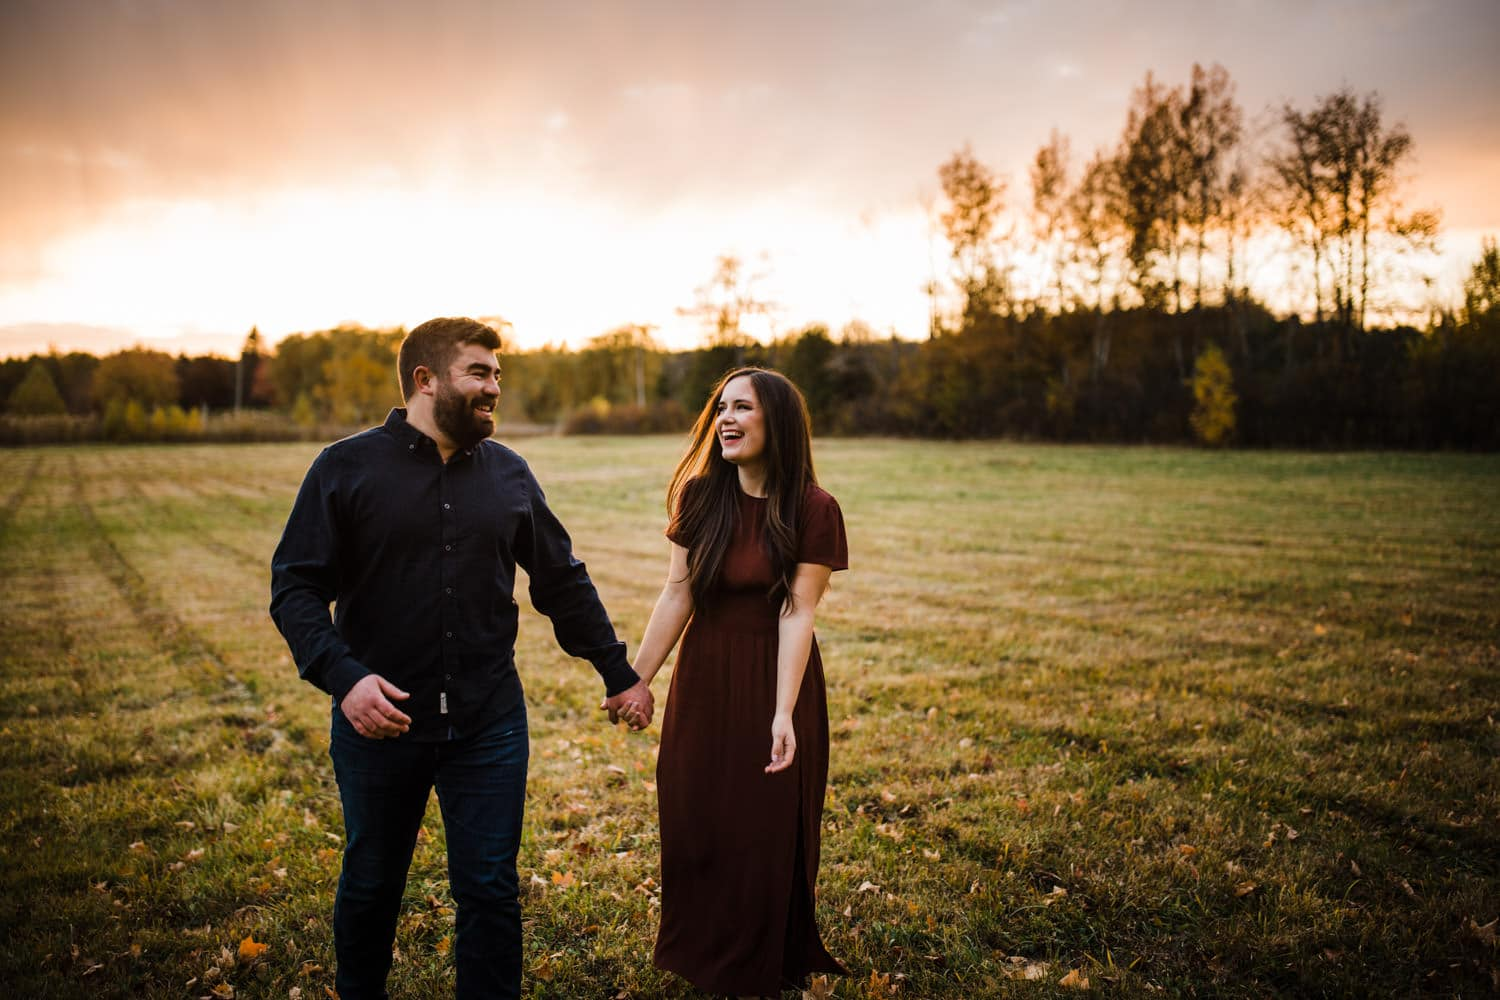 couple walk through an open field together